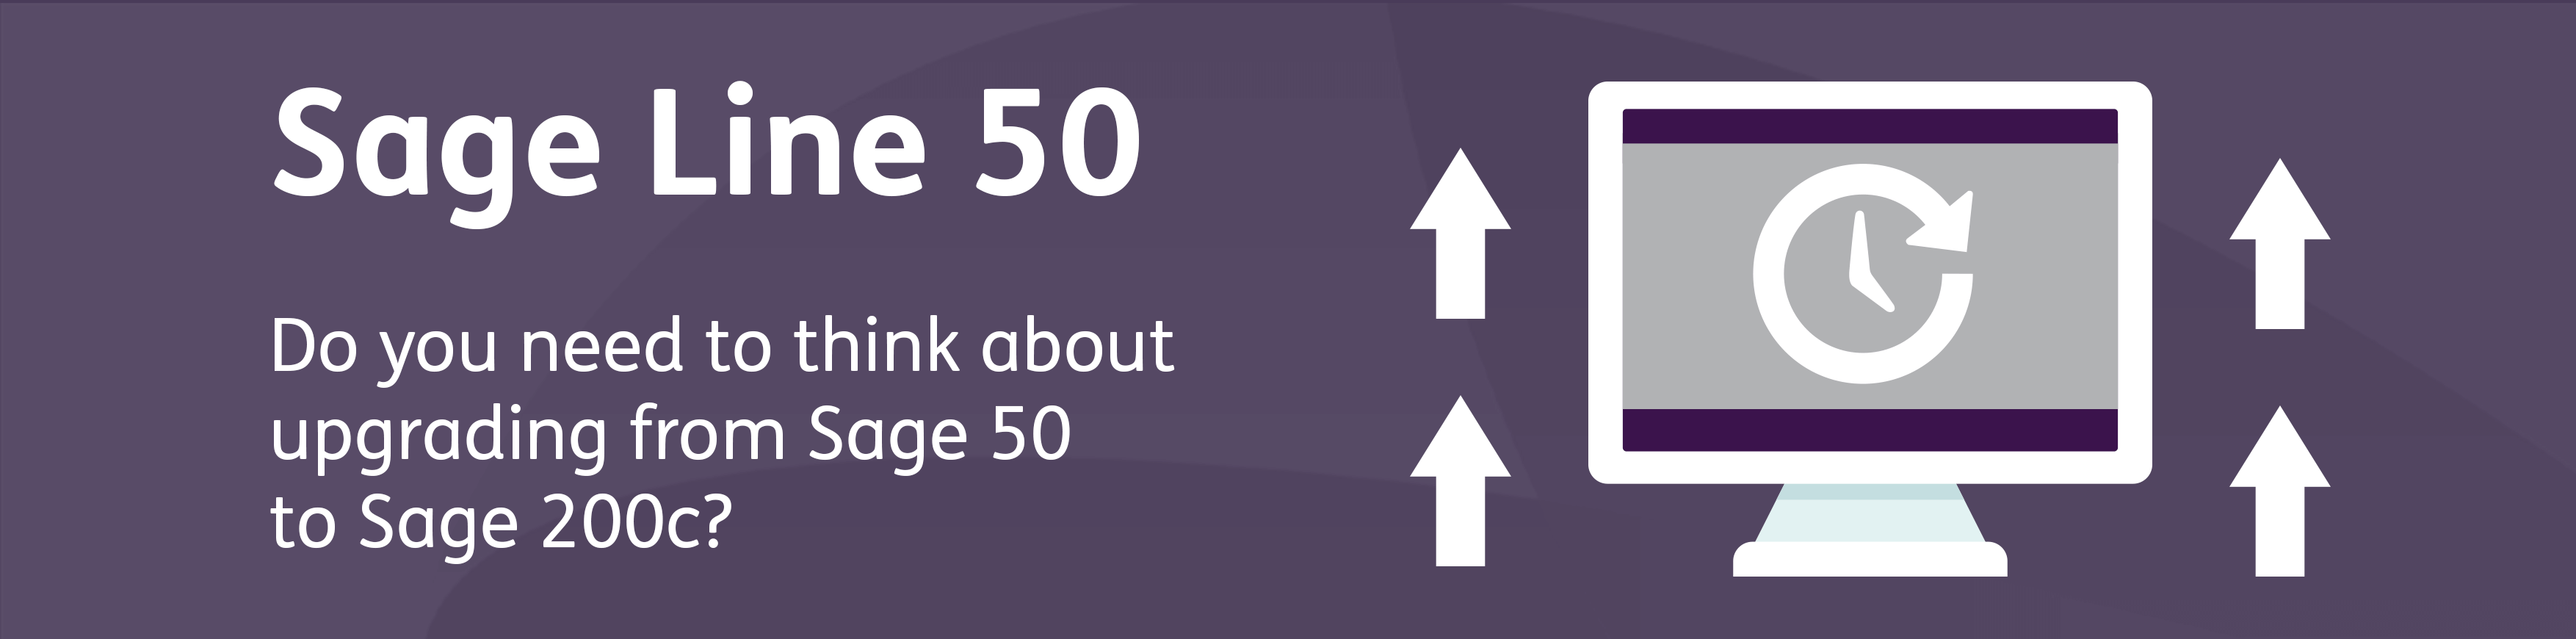 Upgrade from Sage 50 to Sage 200